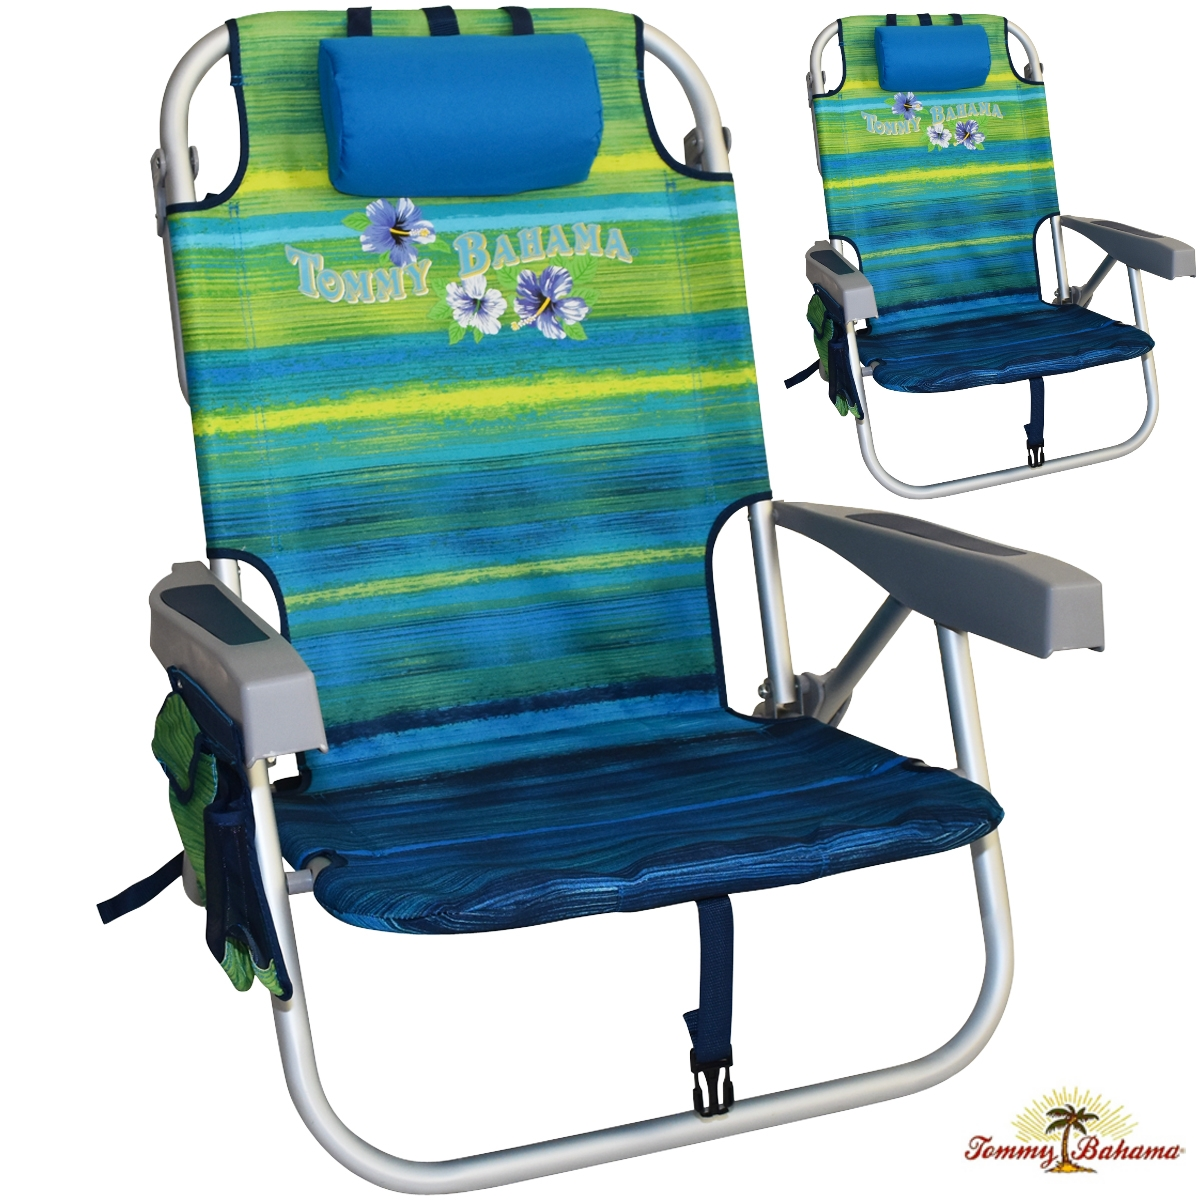 Backpack Beach Chair 2 Tommy Bahama Backpack Cooler Beach Chairs With Towel Bar